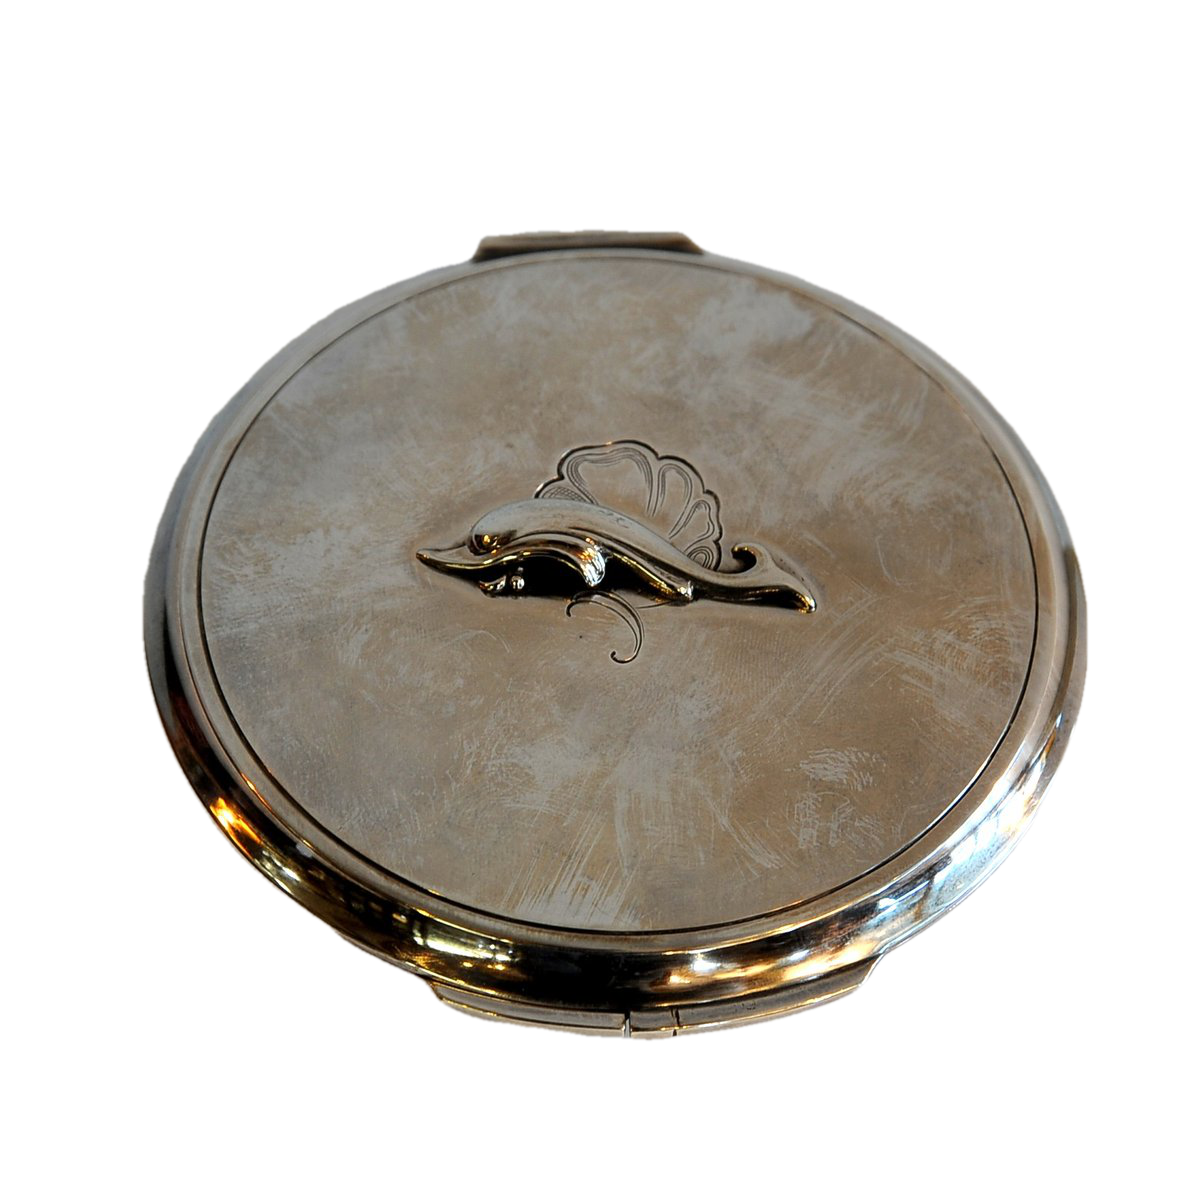 Georg Jensen, Harald Nielsen Sterling Silver Compact. Danish Mid 20th C.